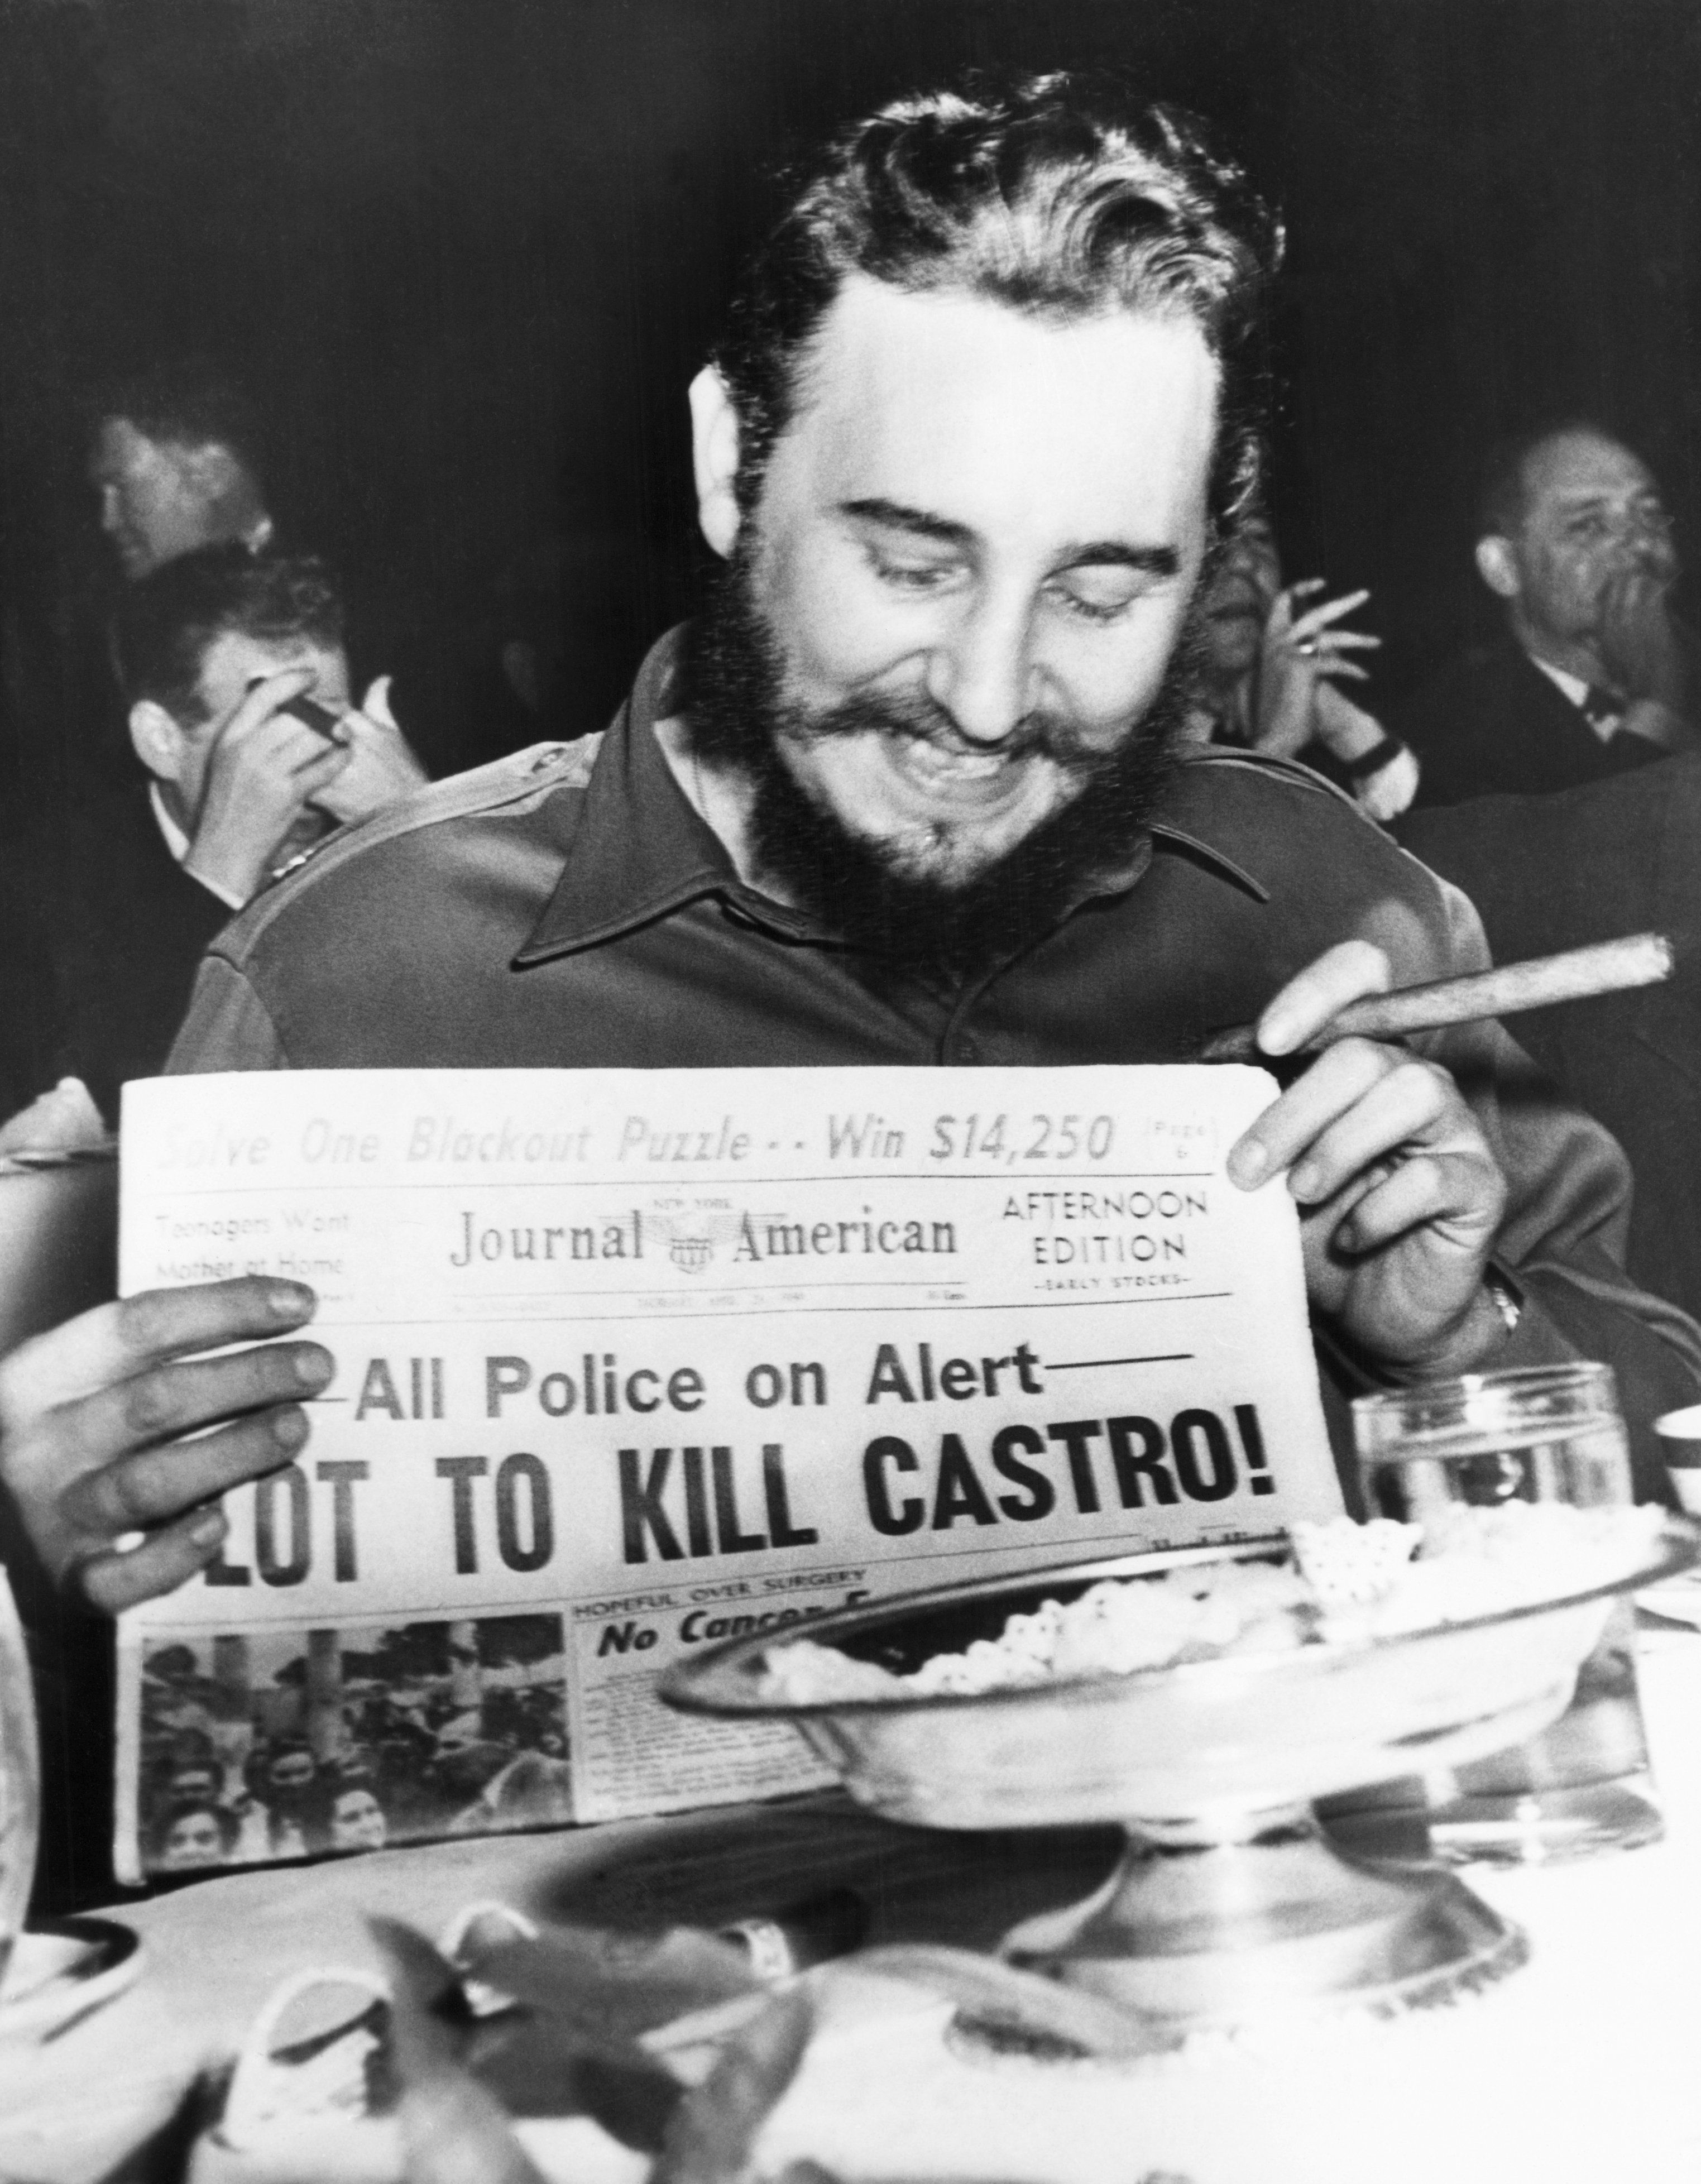 Seeming quite amused, Castro holds up a newspaper headlining the discovery of a plot to kill him in New York City on April 23